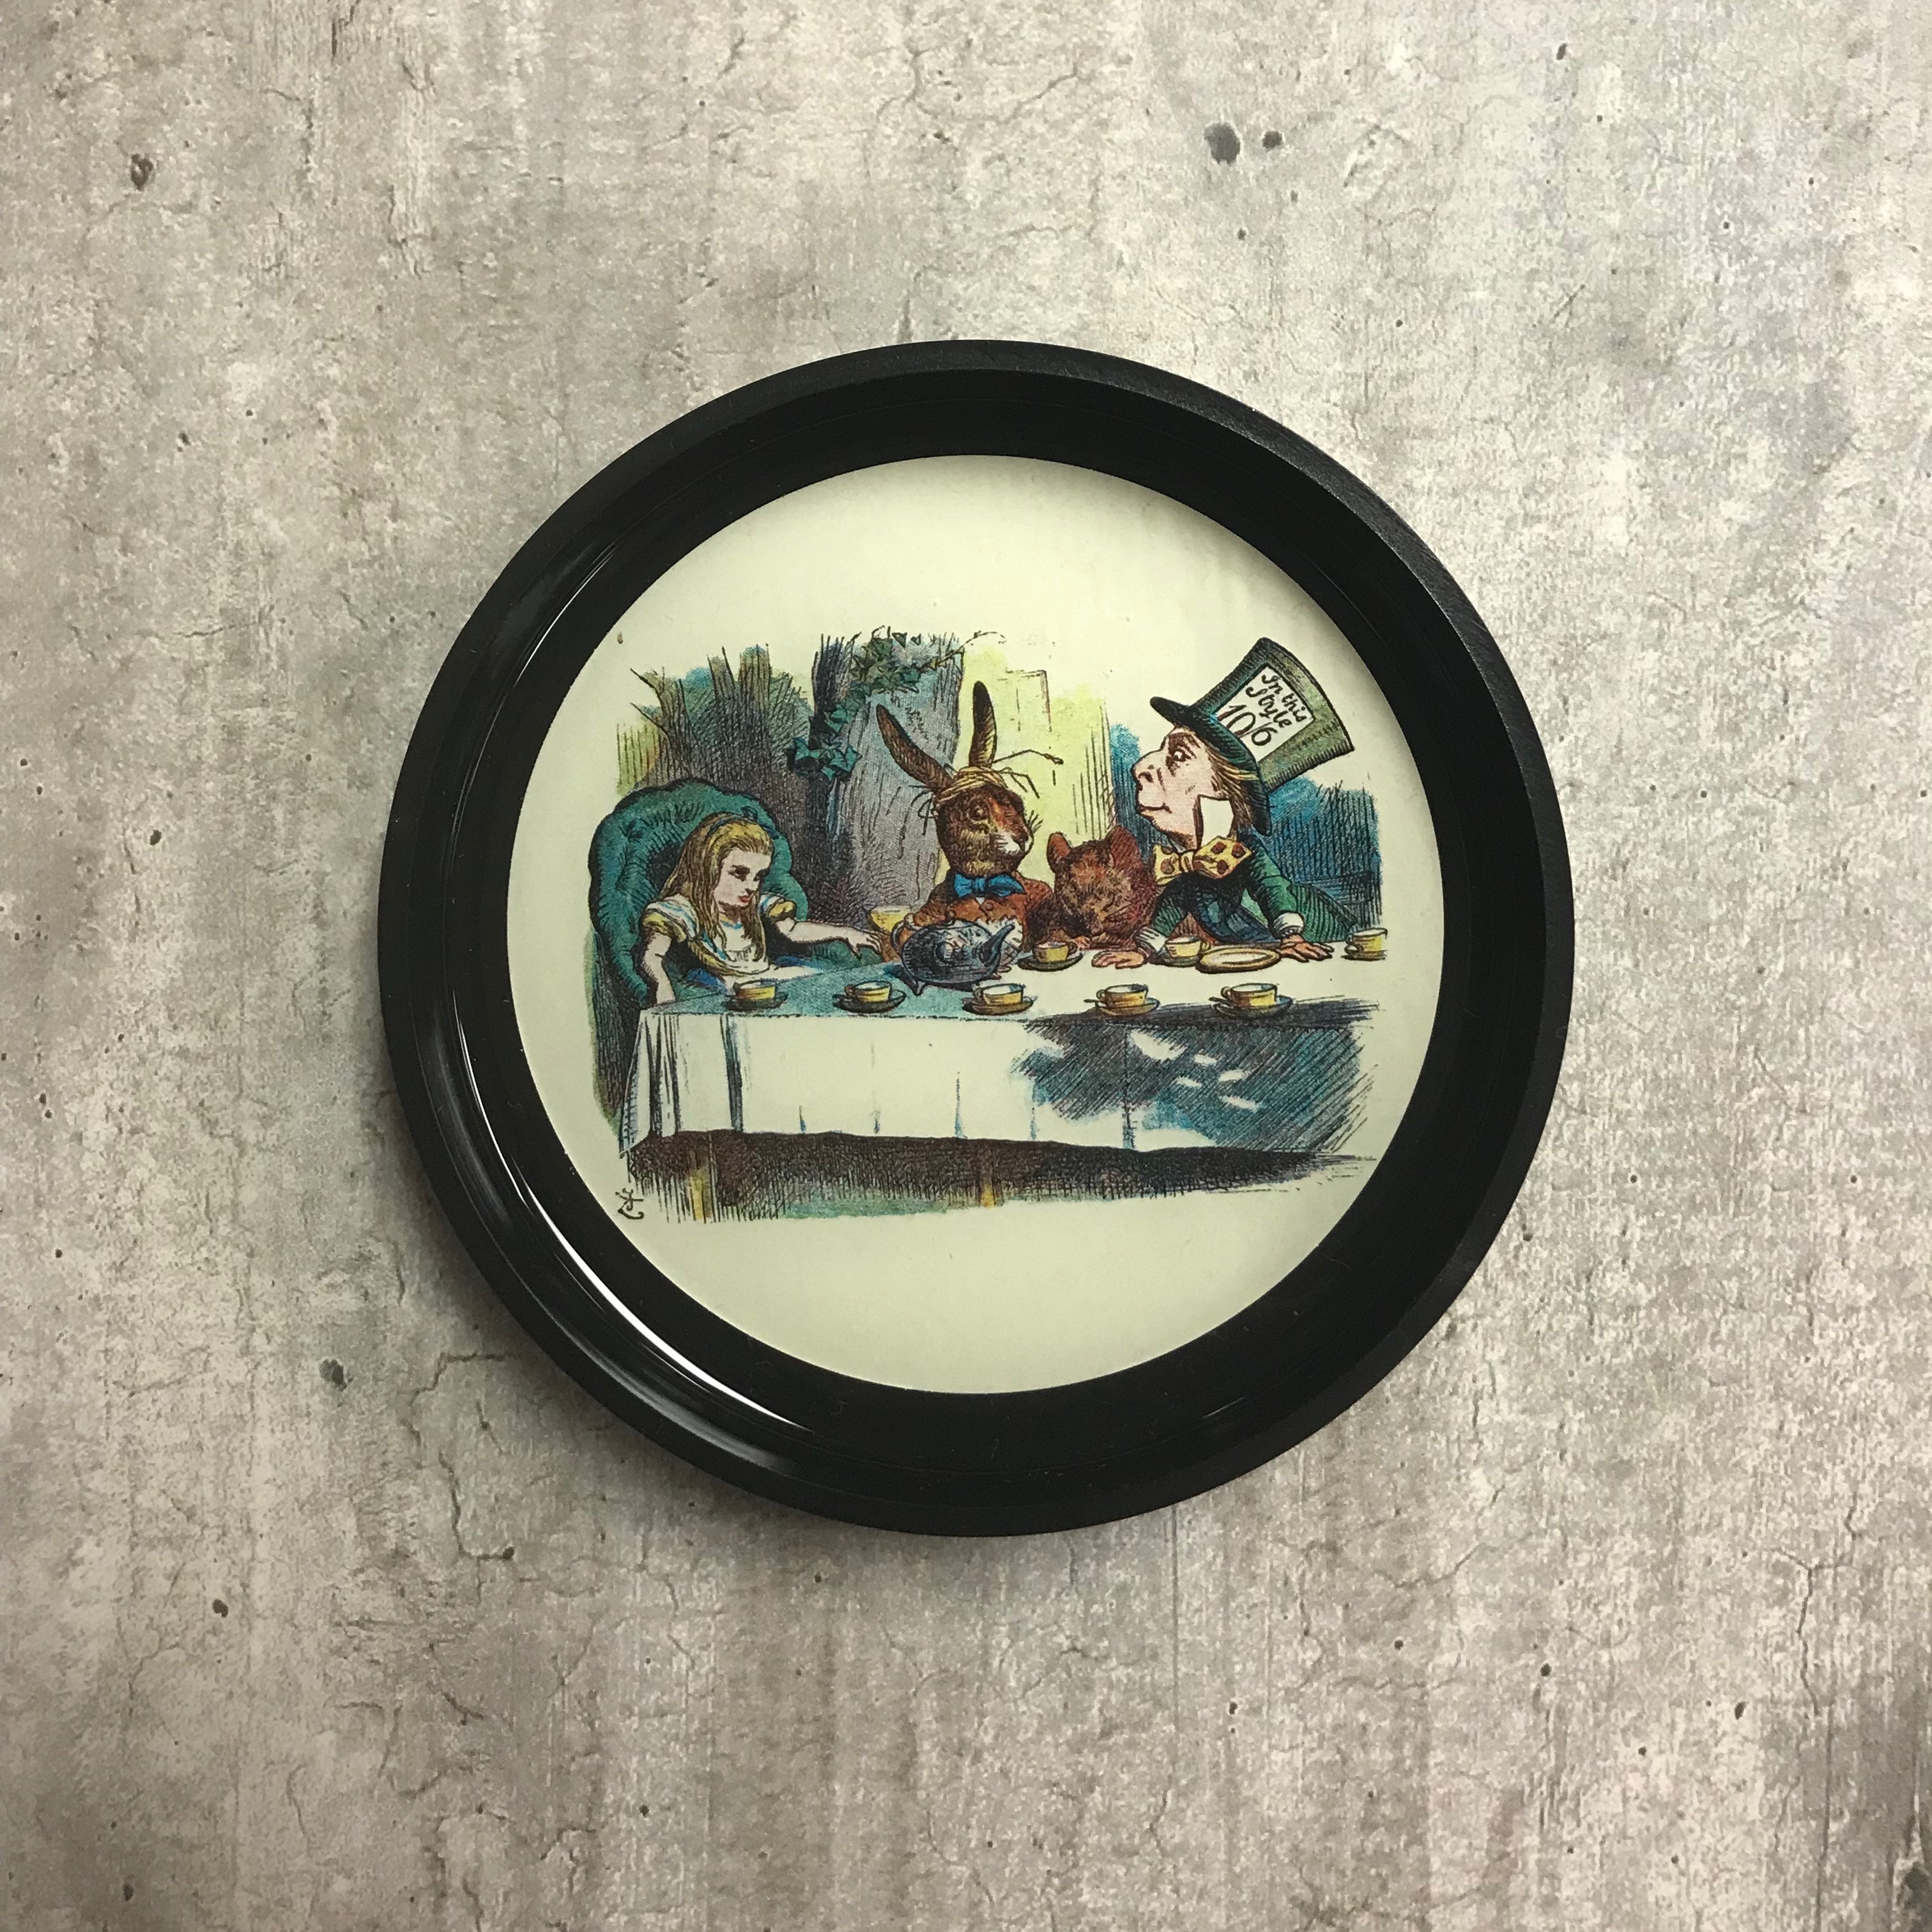 Image for the Round Black Tray, Alice in Wonderland Designs product